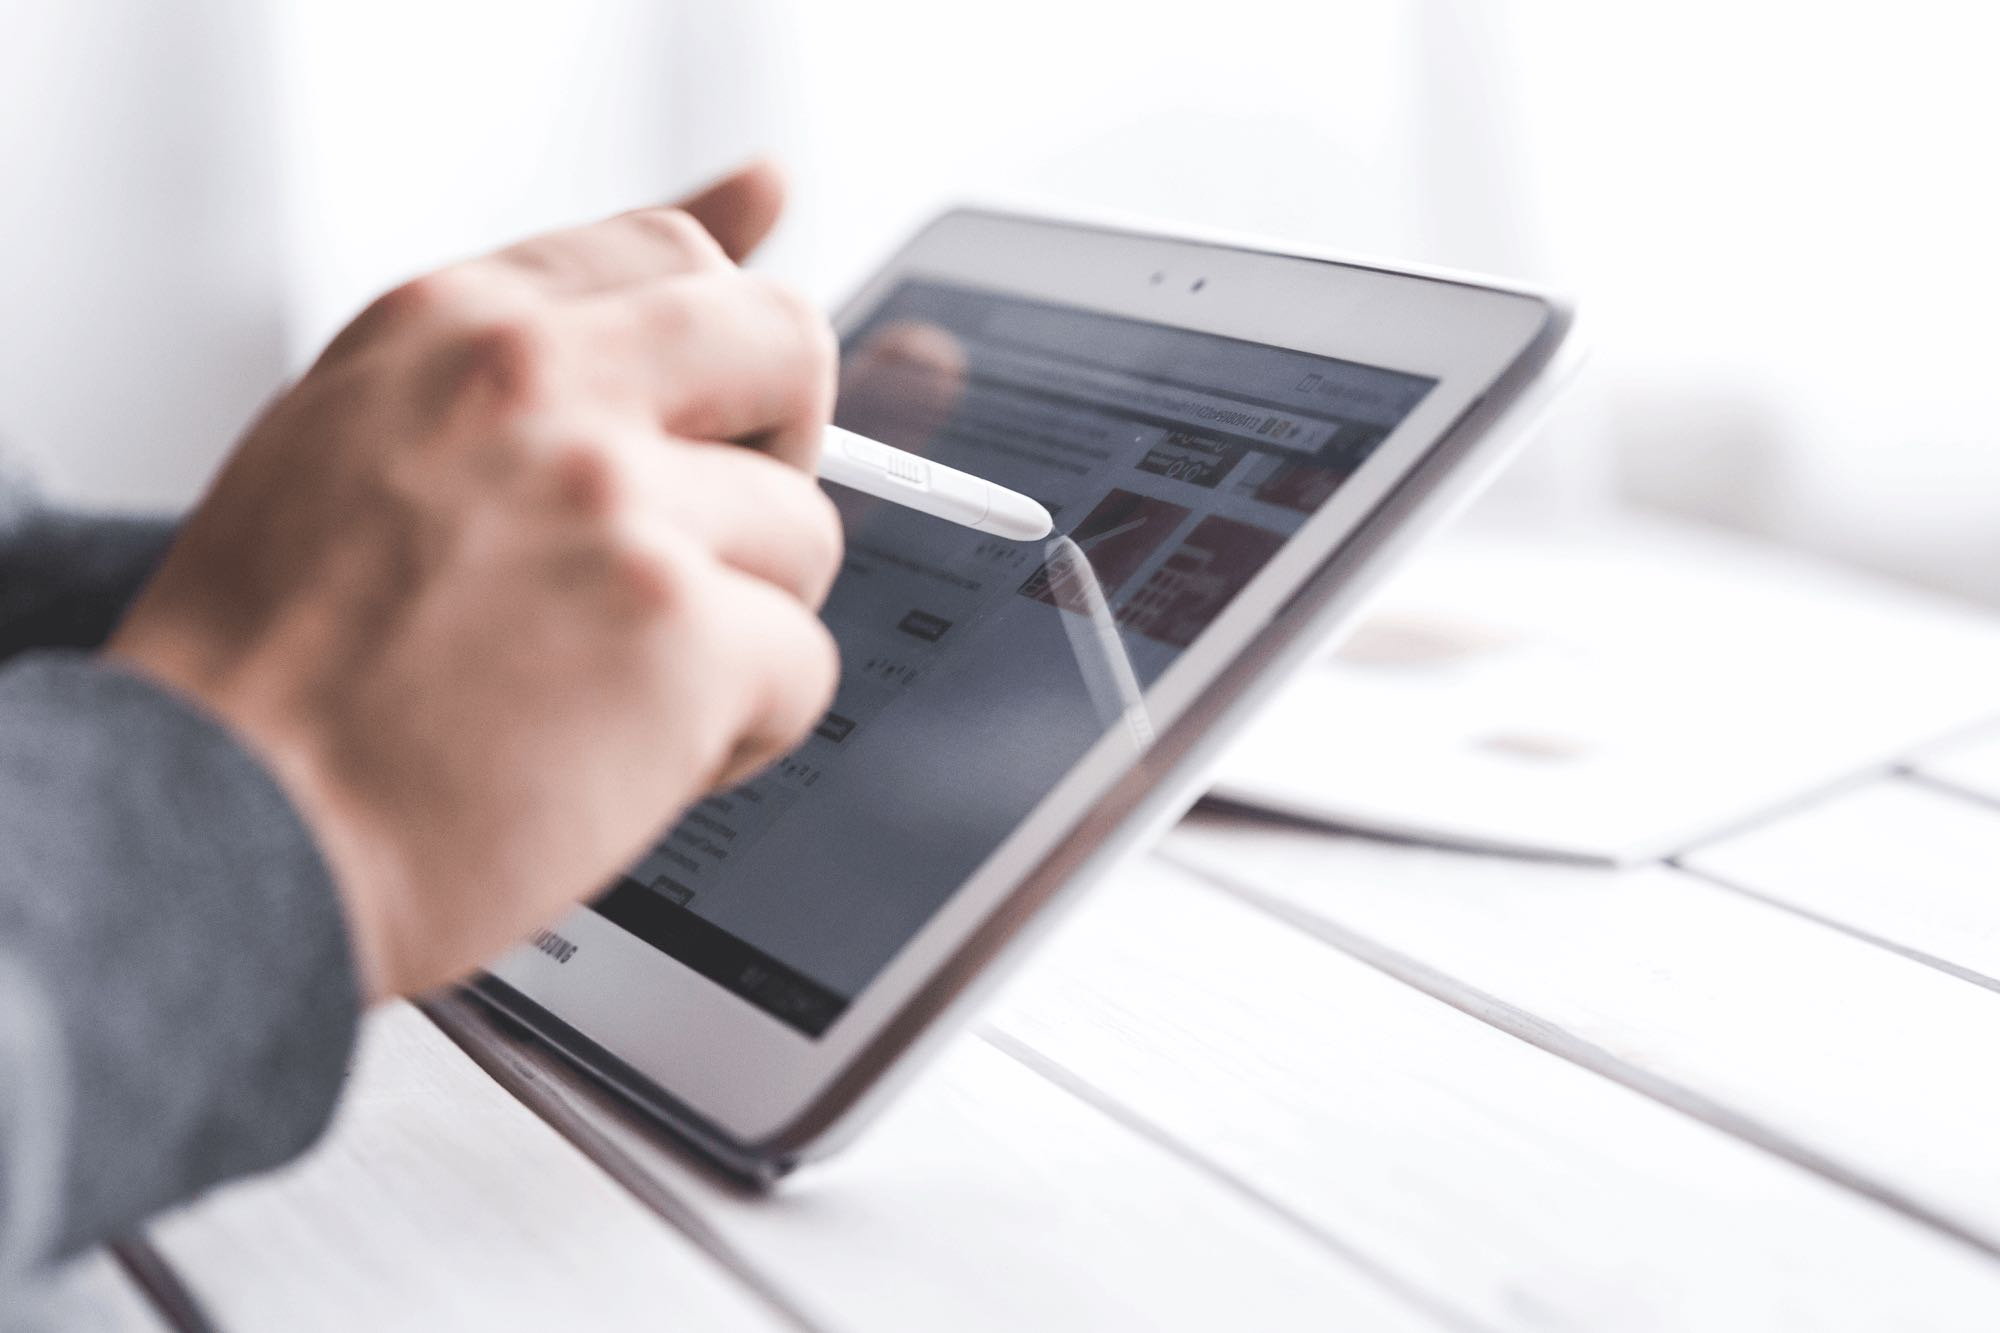 There's no stopping it! SMEs are becoming digital